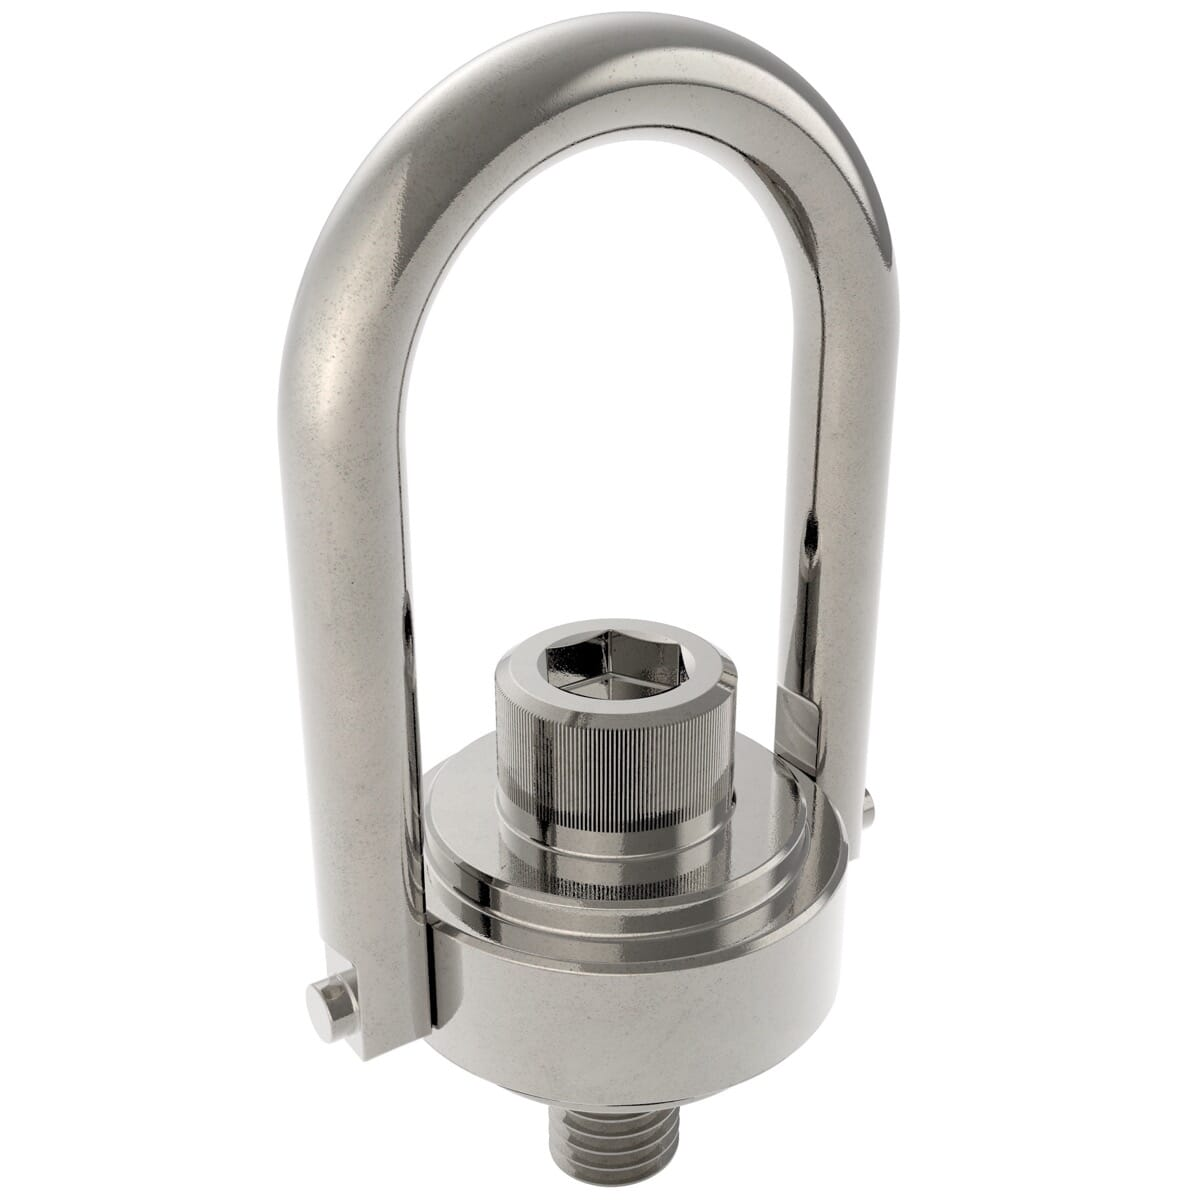 165.80mm x 121.20mm (1500kg) Safety Engineered Hoist Rings - Stainless Steel